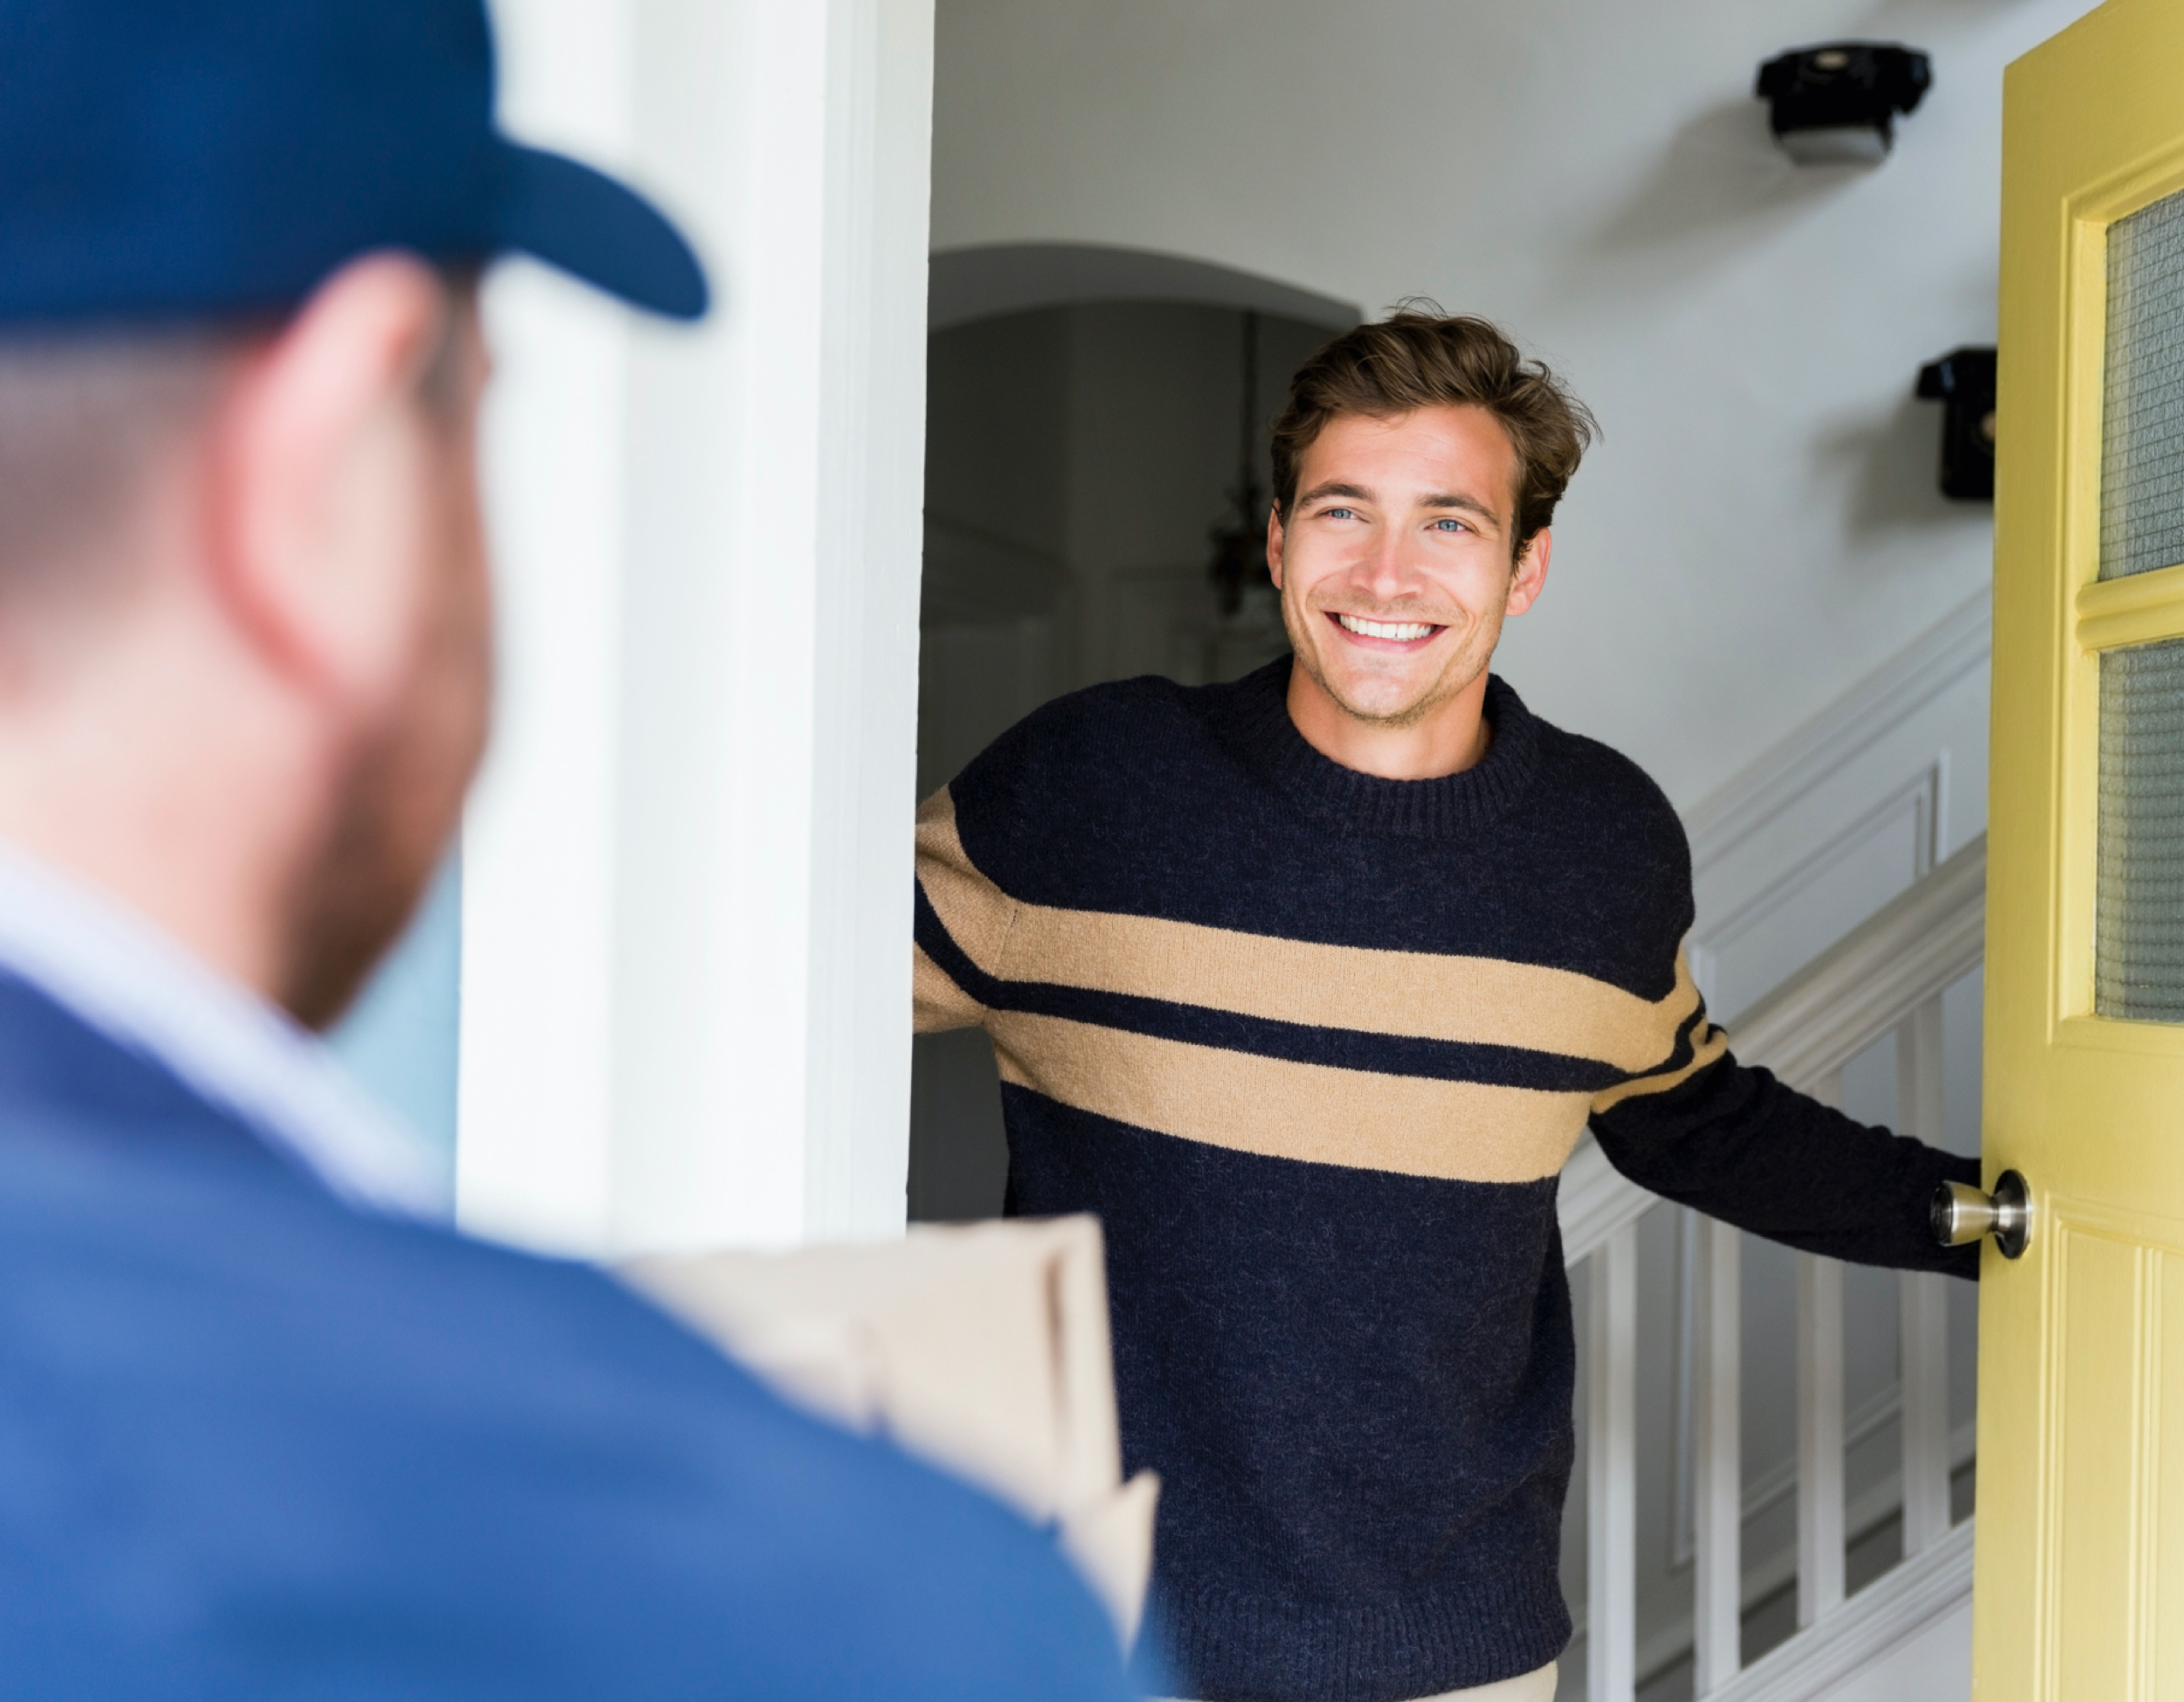 Young man opens front door of house for installation worker.